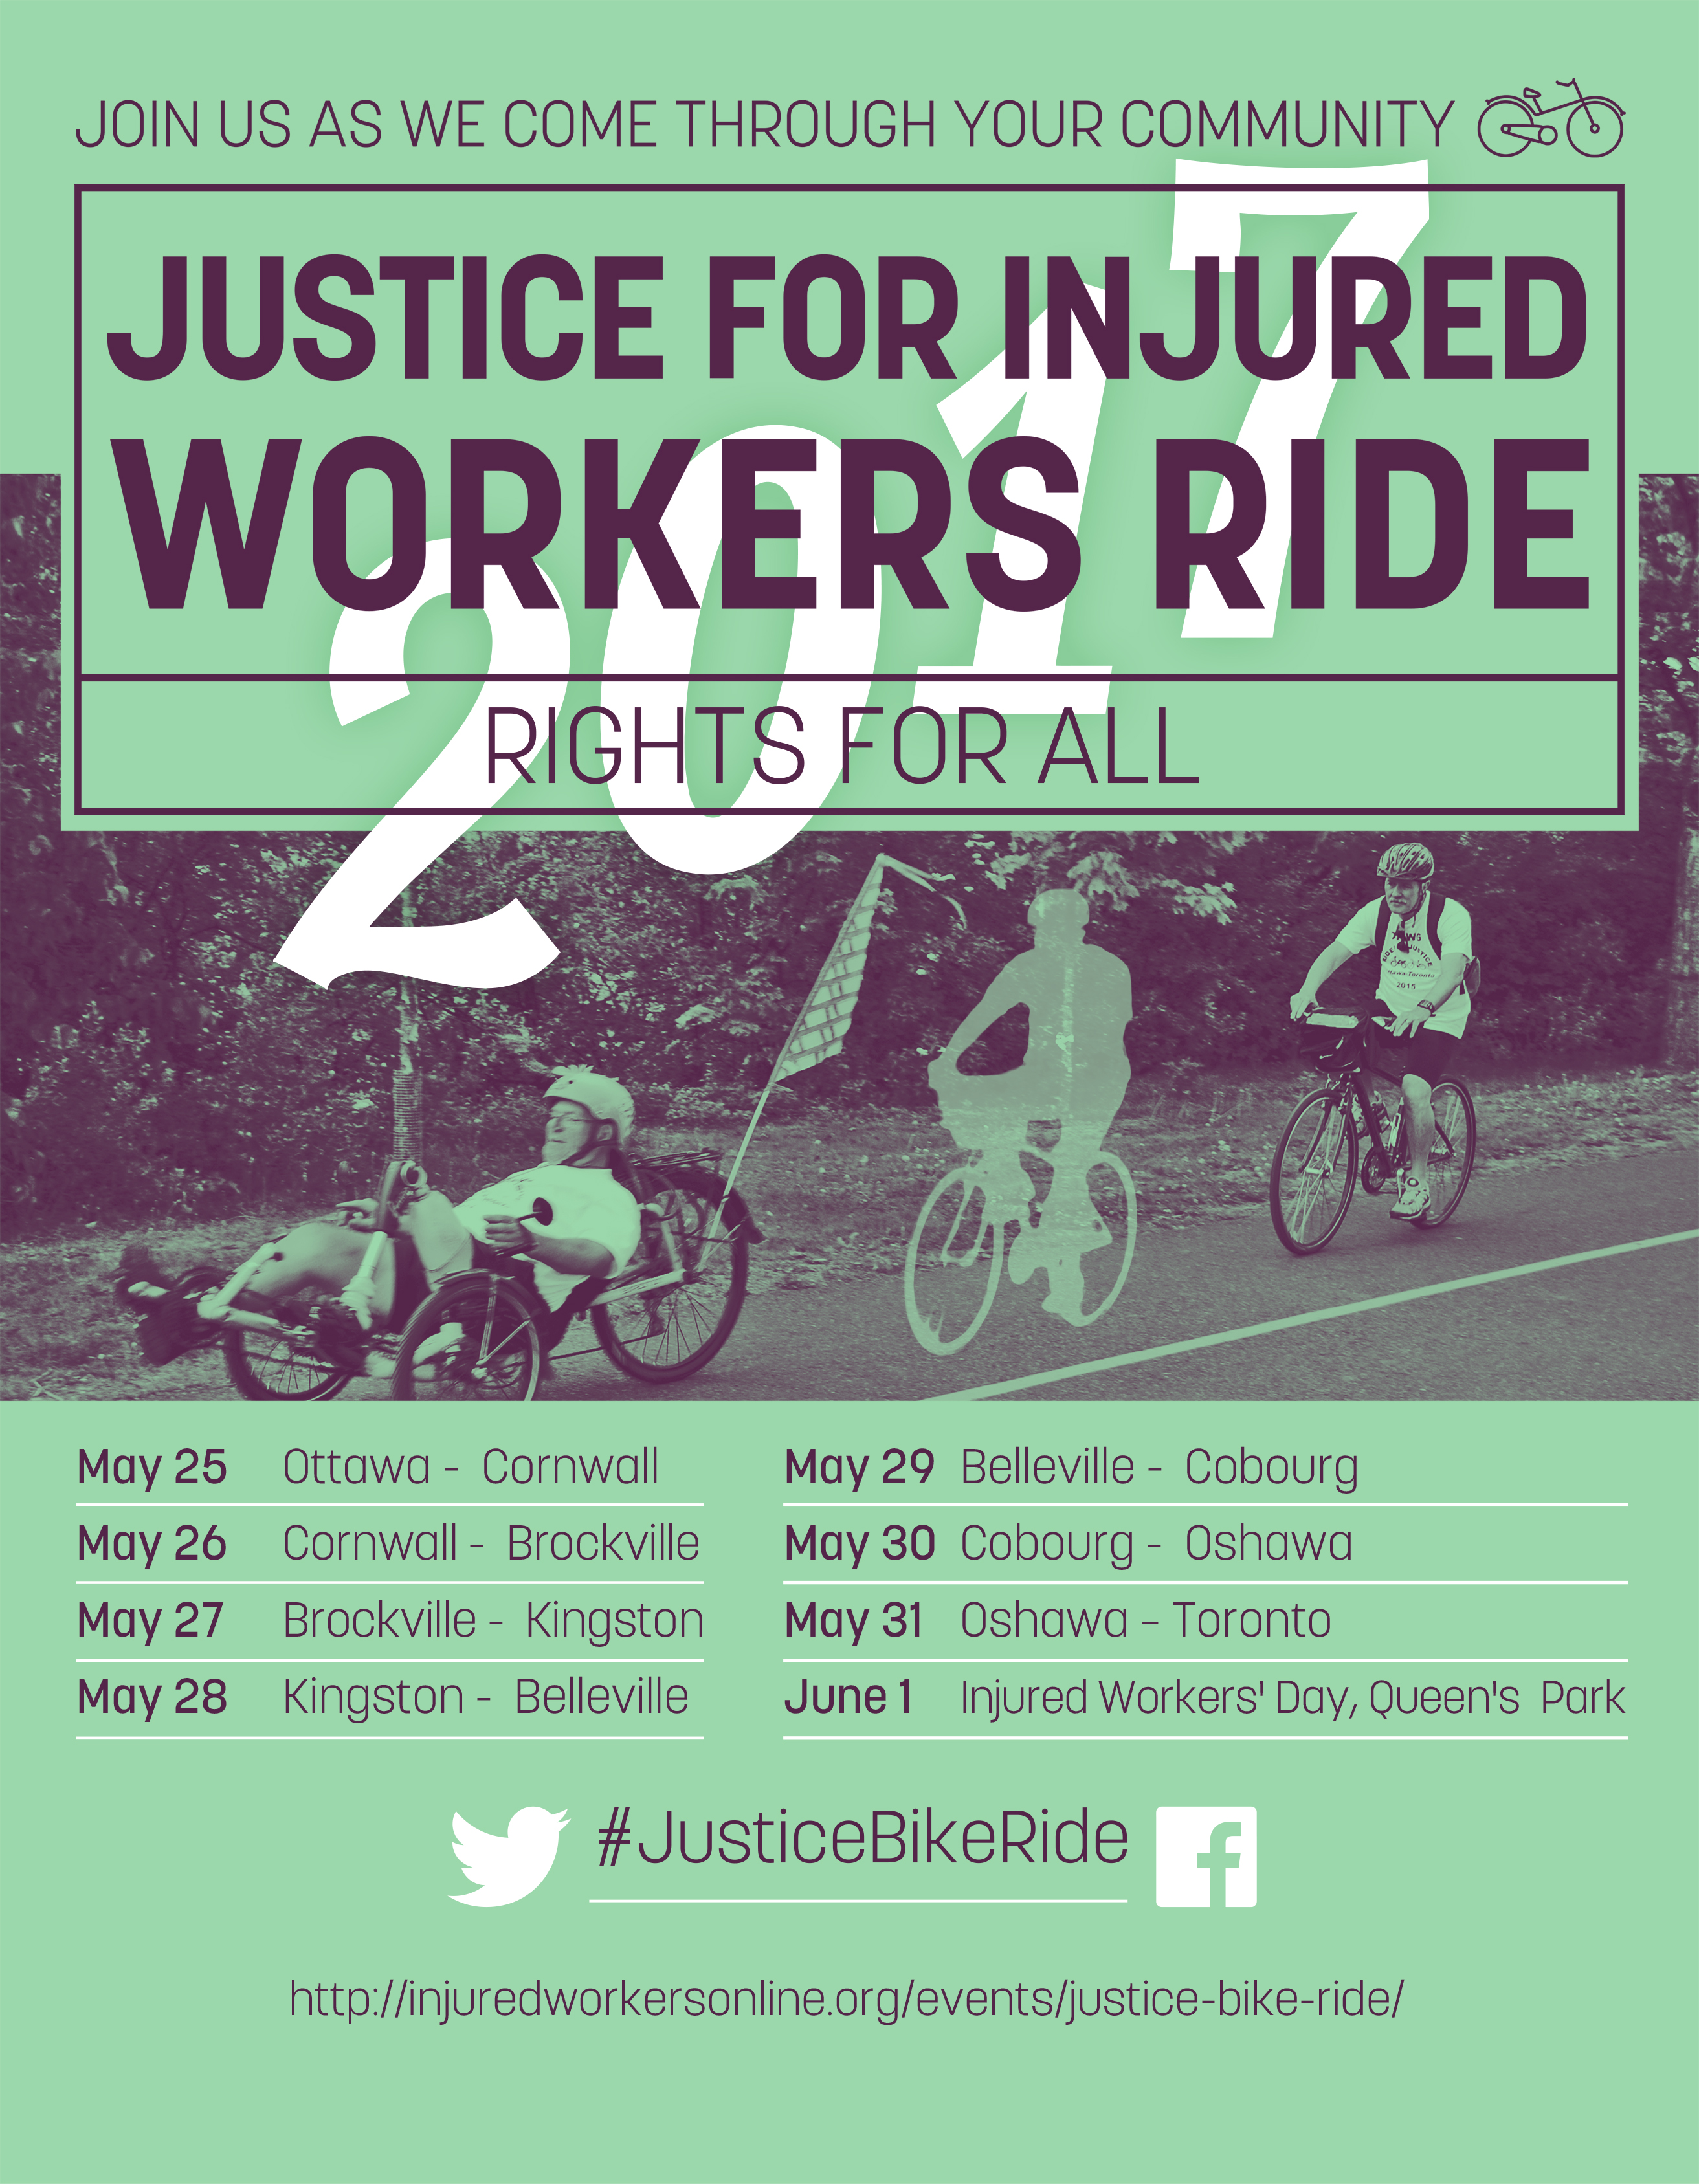 Justice Bike Ride 2017 poster with itinerary